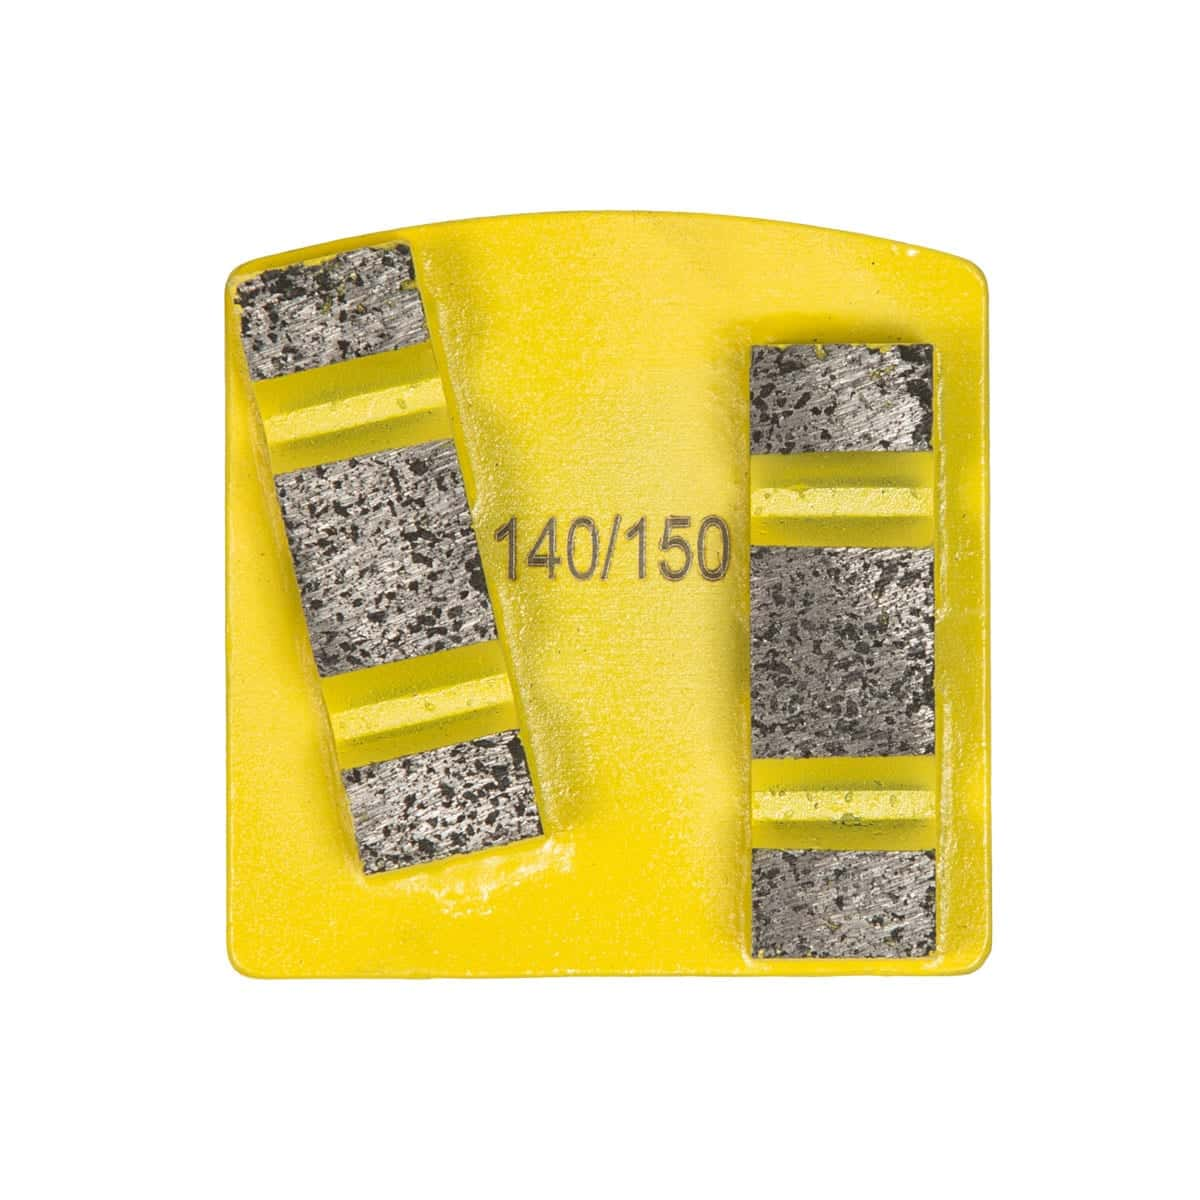 Front Extra Hard Concrete 8 mm - 12mm Concrete Diamond Tool Yellow Super Soft #16/20   #30/40   #60/80   #140/150 by Scanmaskin